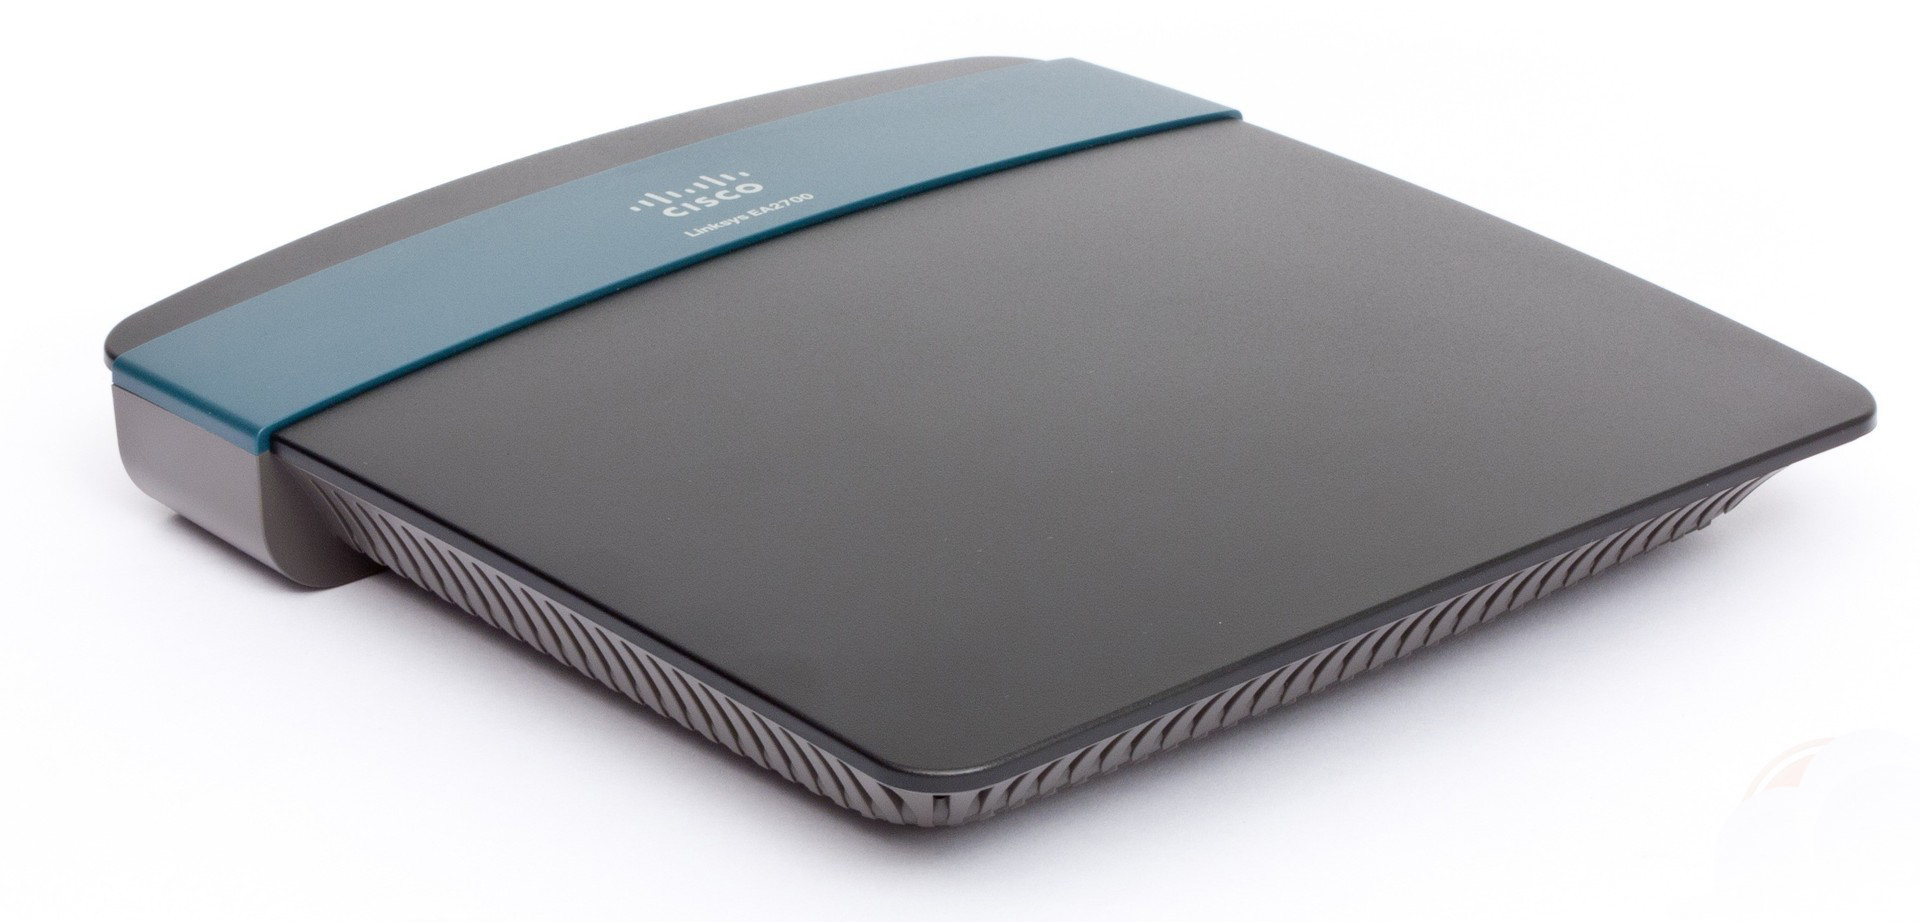 How to Reset the Linksys EA2700 (N600) Wireless Router